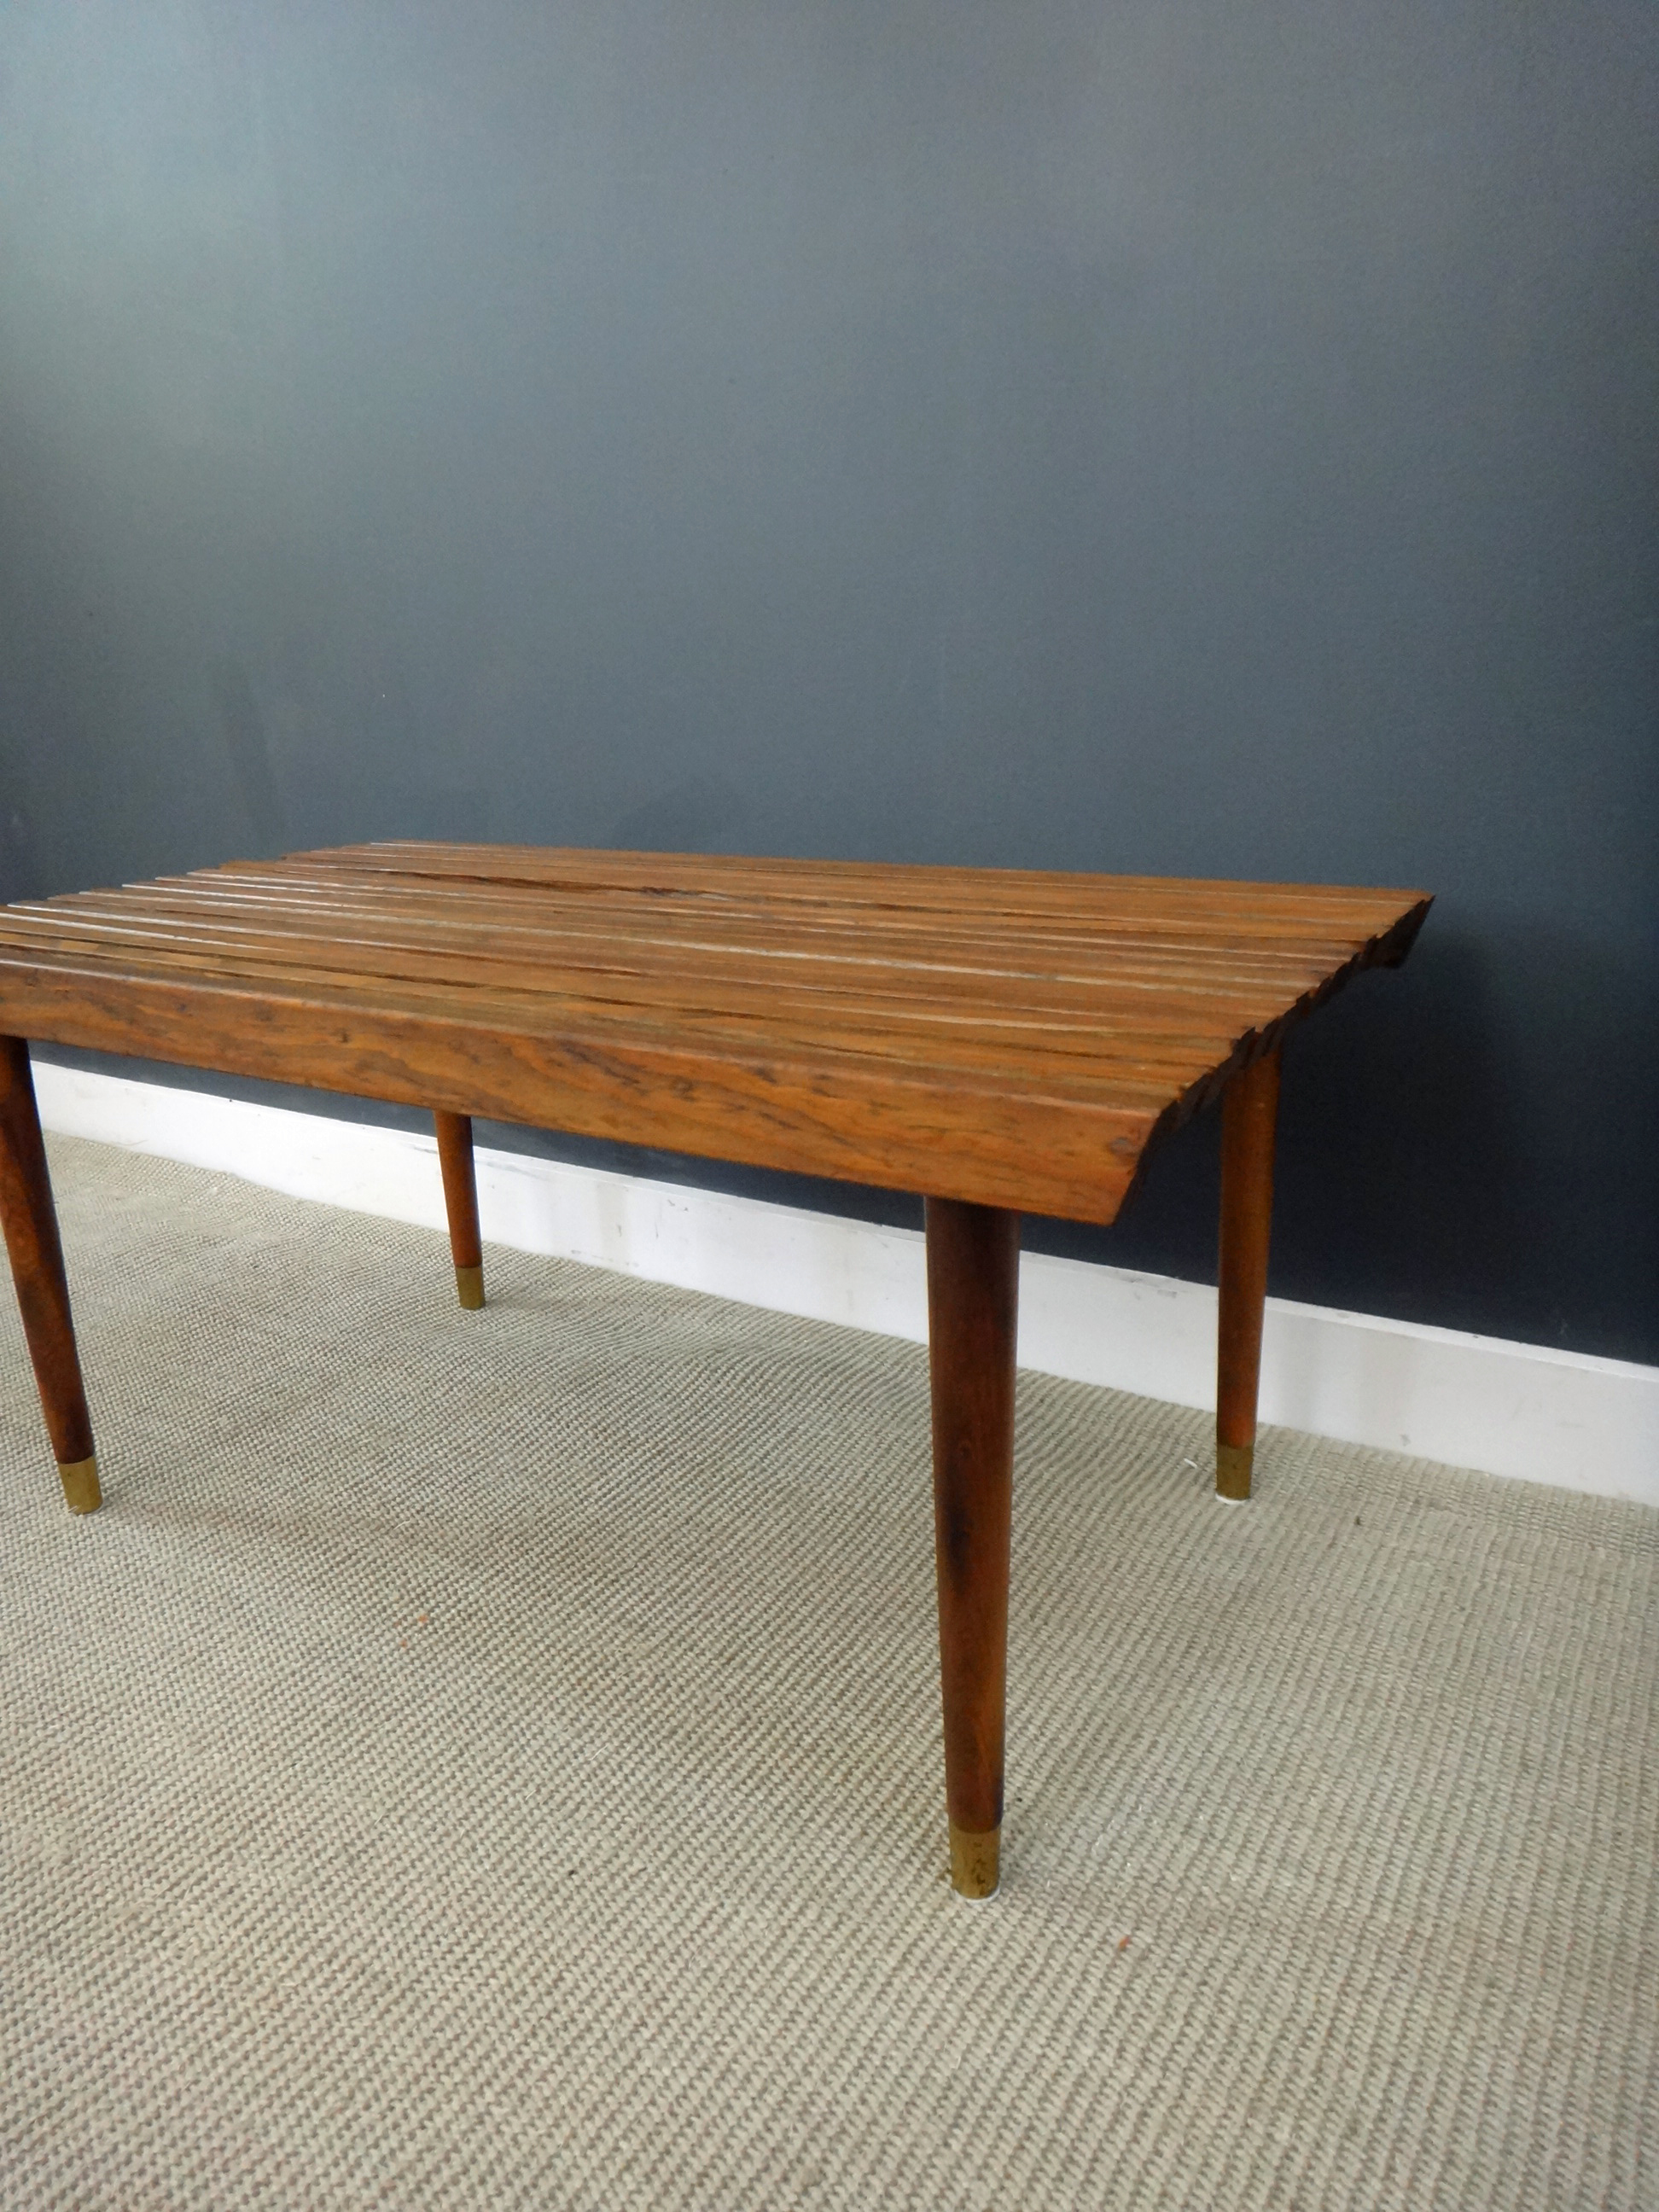 Wood Slat Coffee Table/Bench